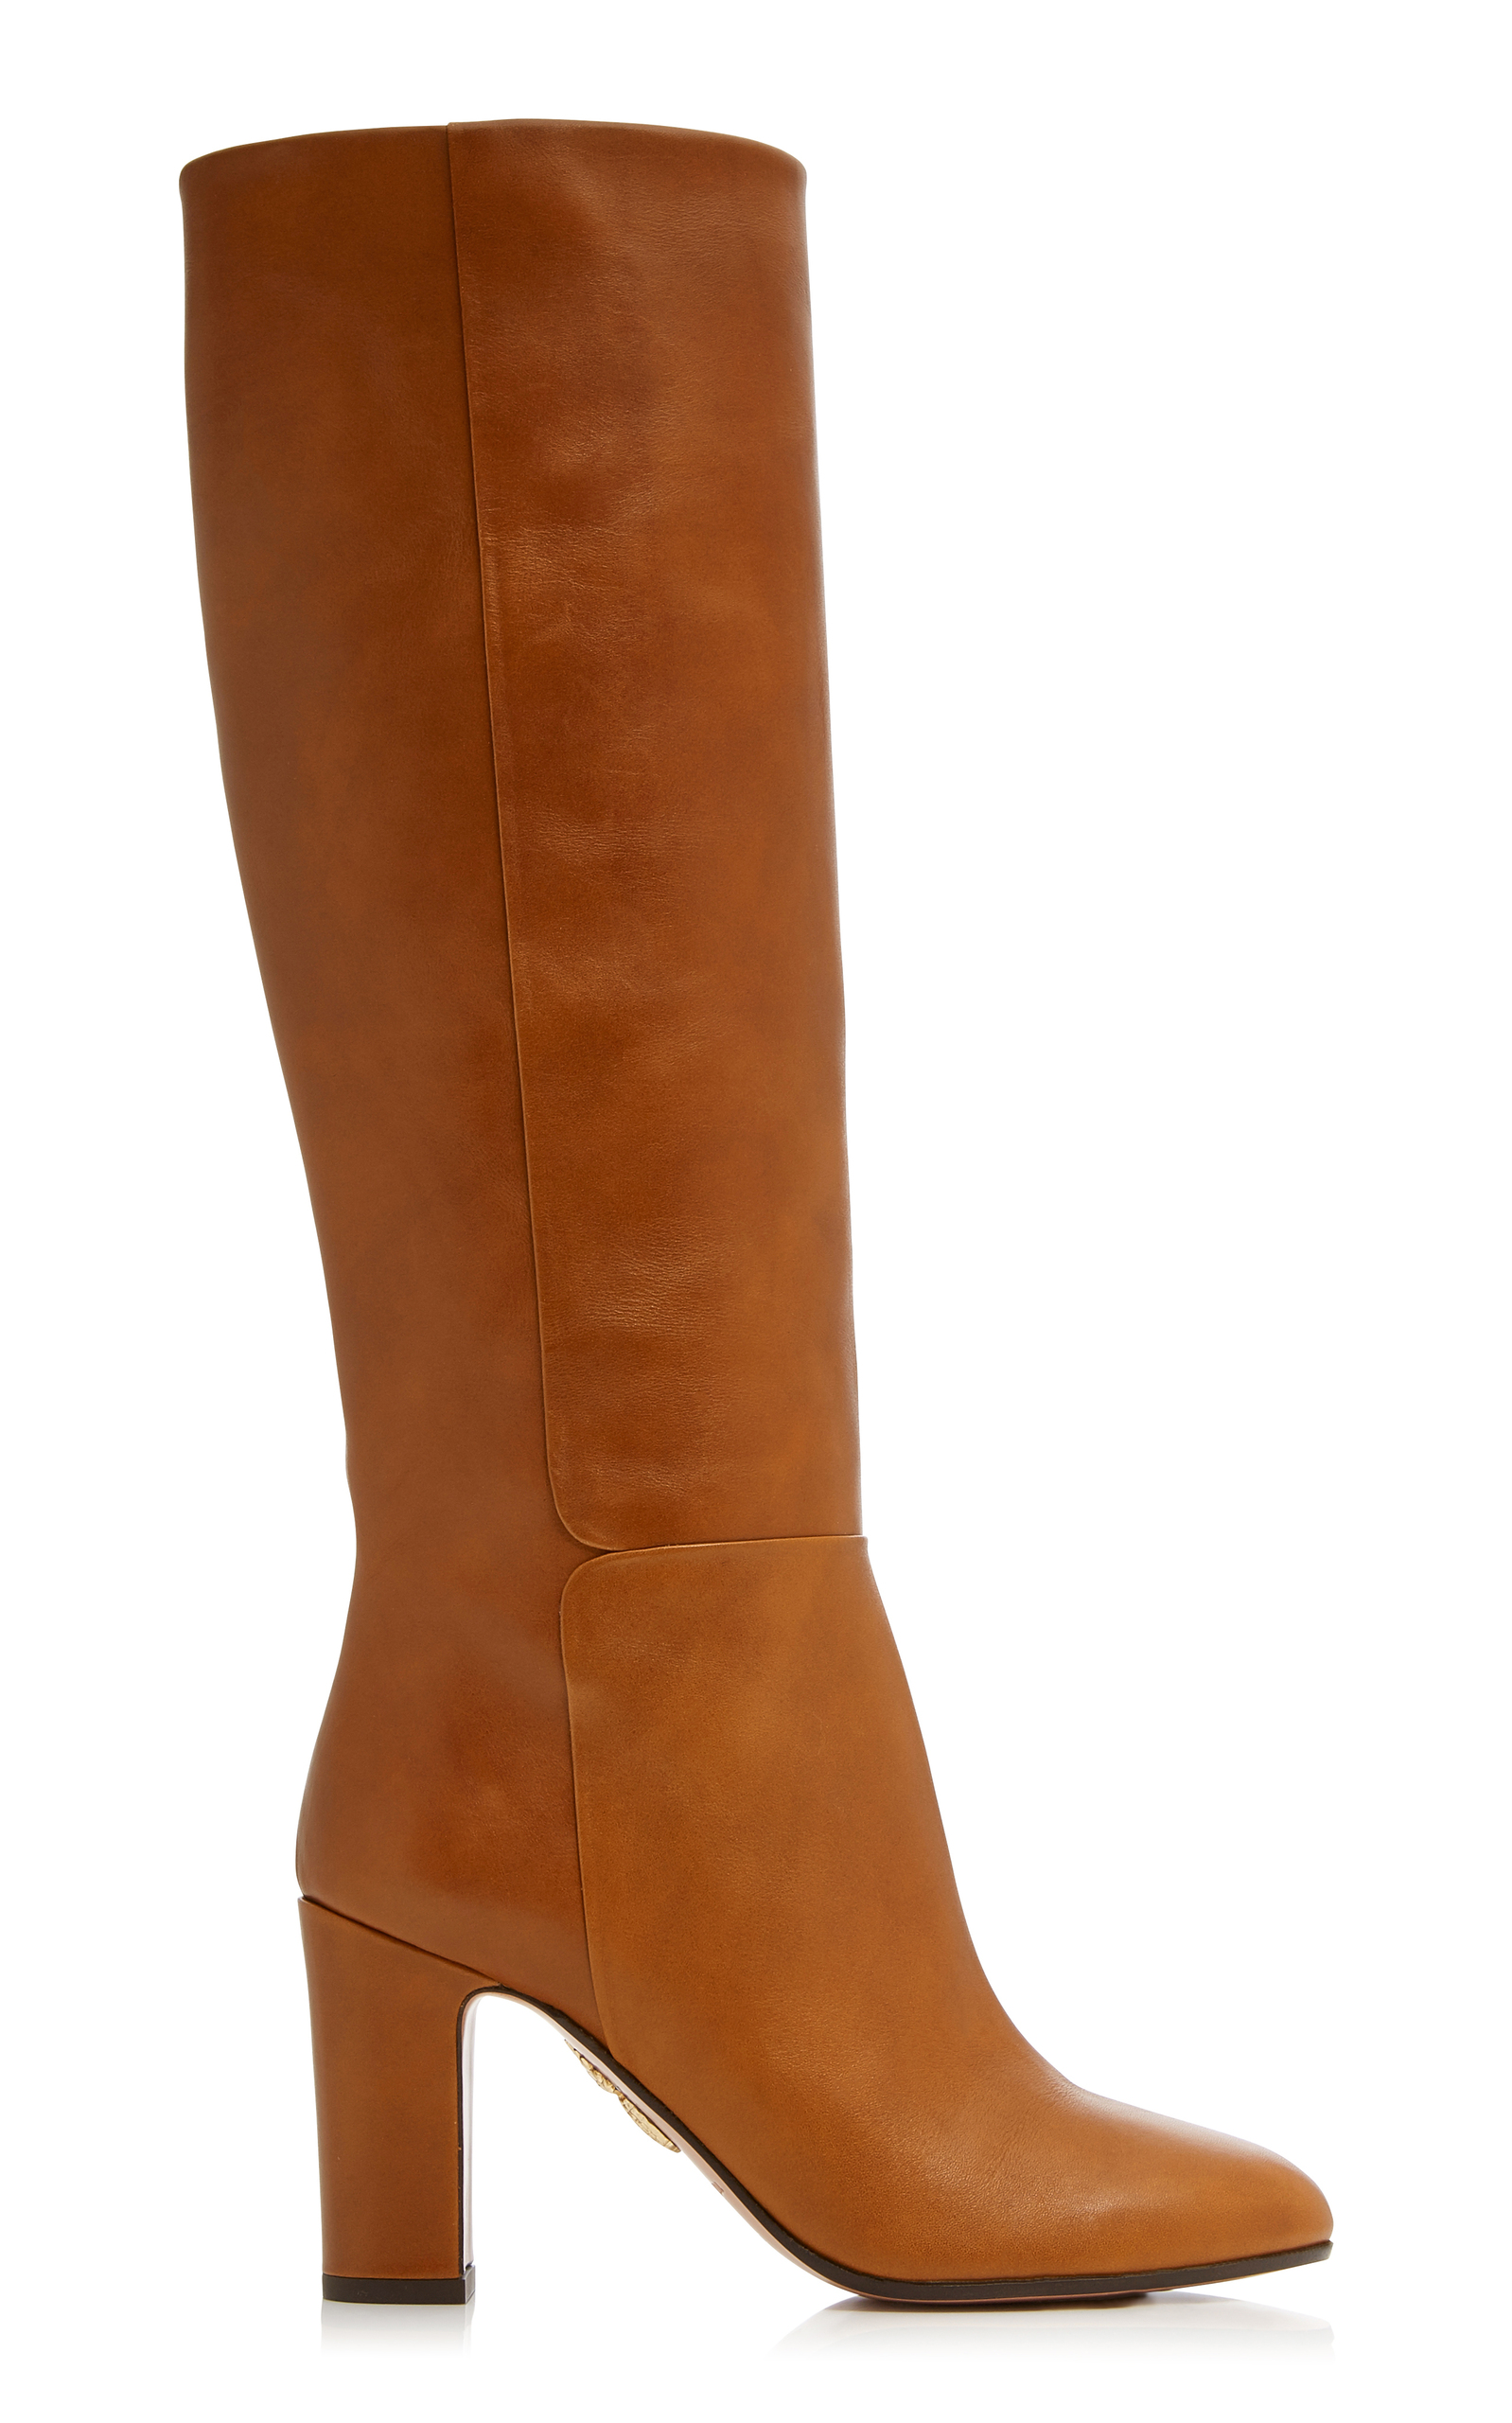 BRERA LEATHER BOOTS